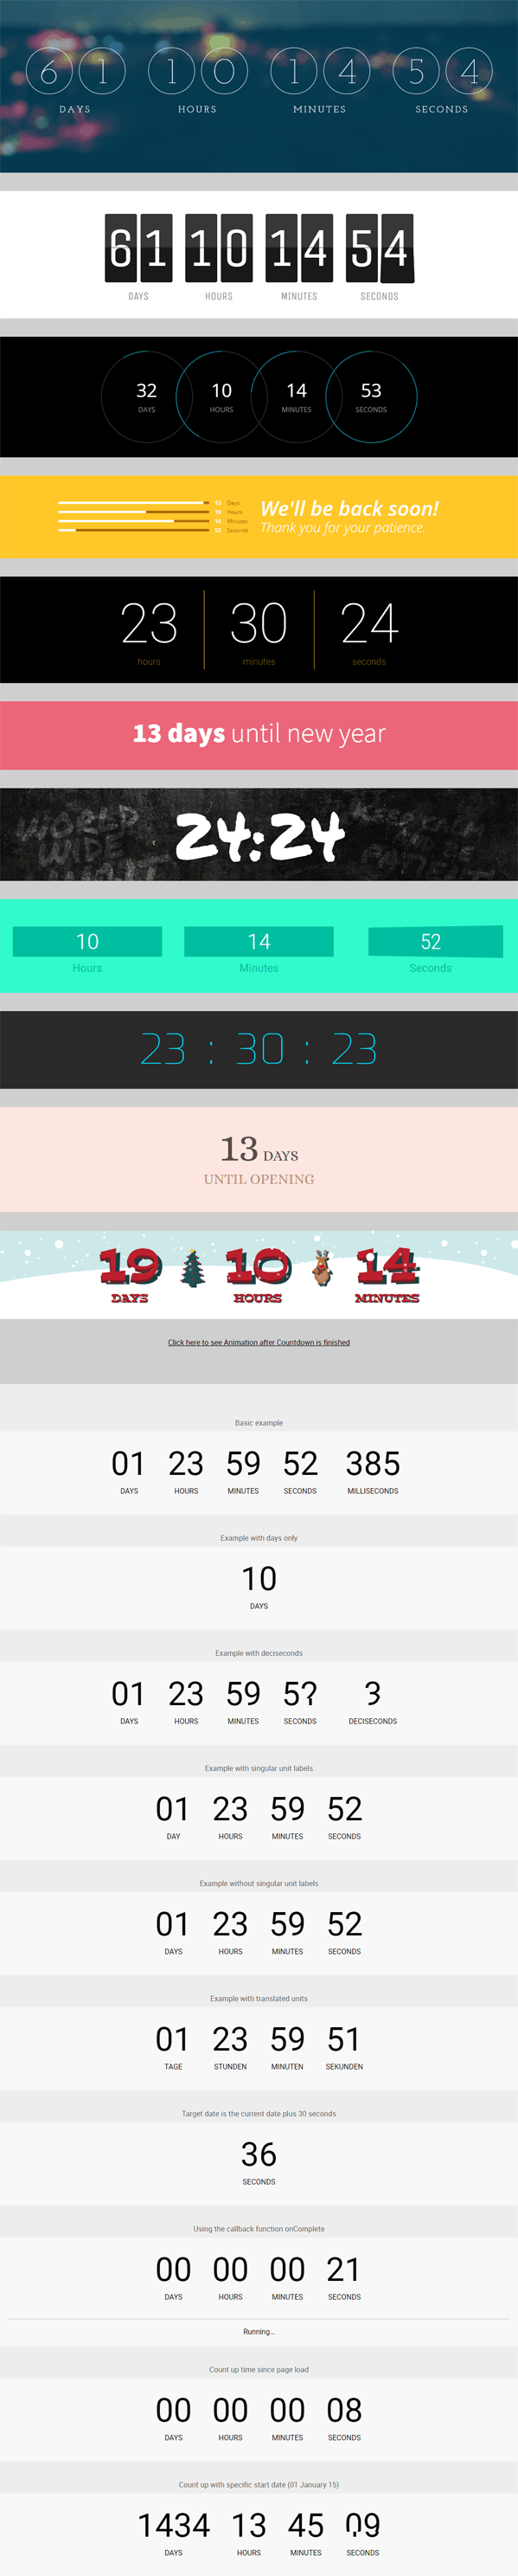 Count Everest Responsive Countdown Timer